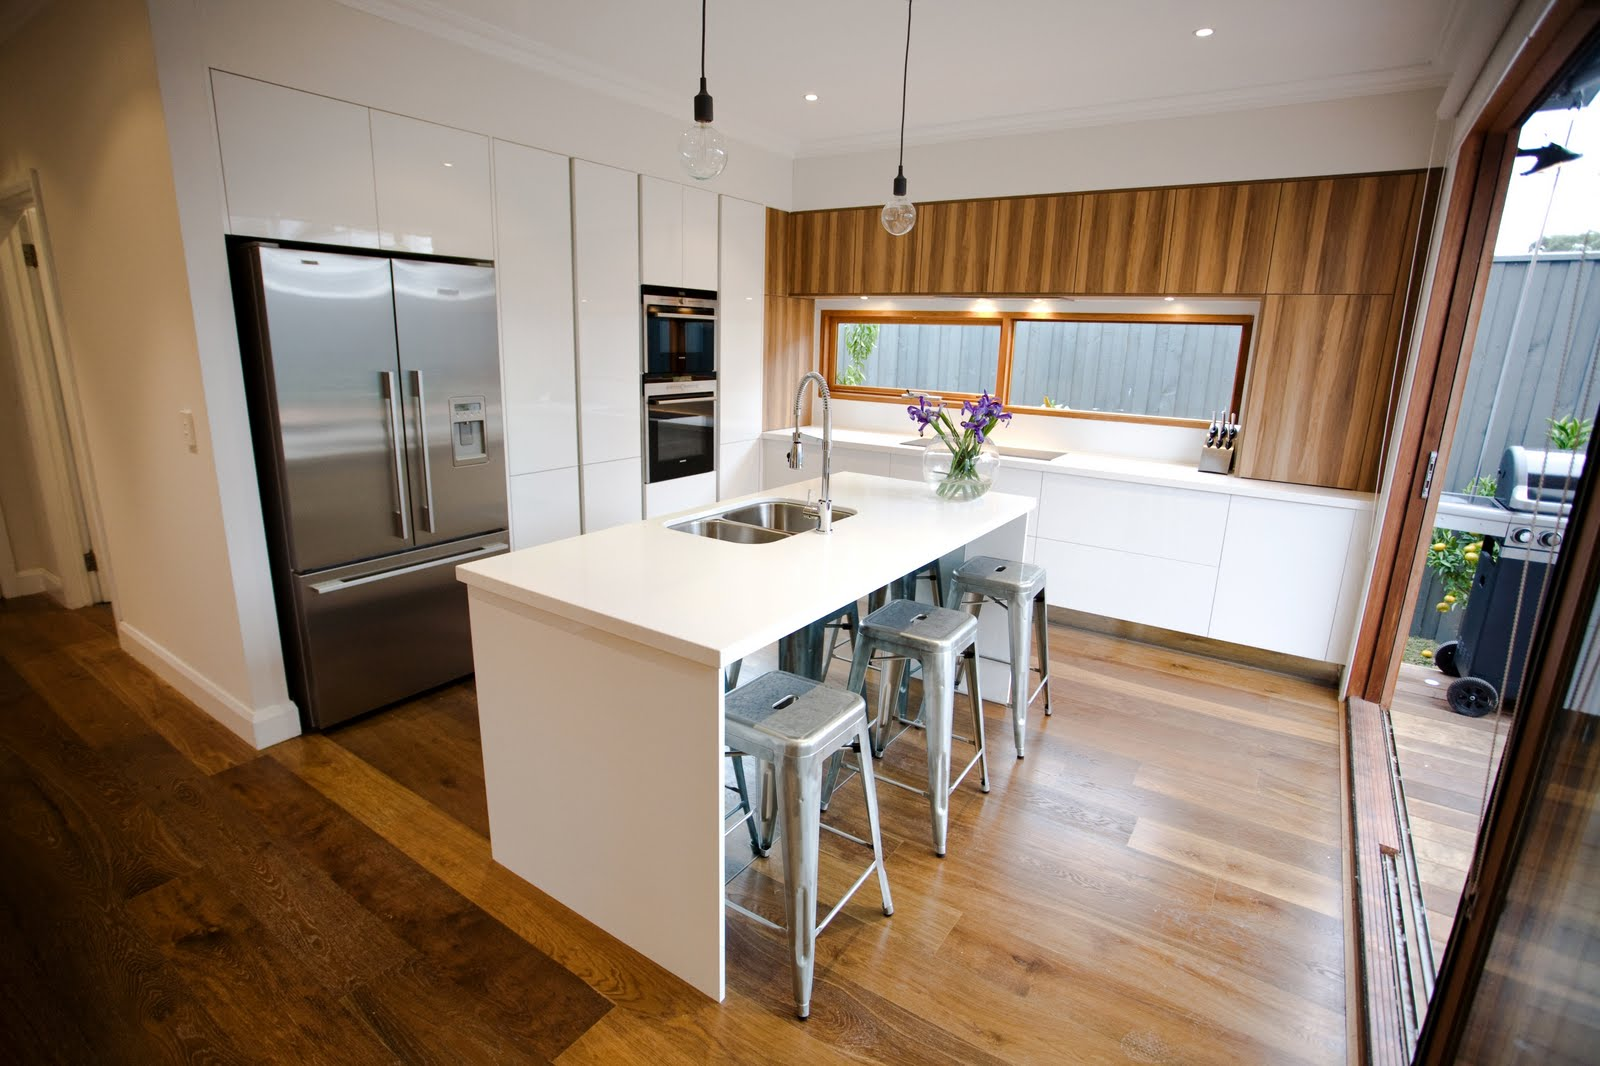 Freedom Furniture Kitchens Complete Home Freedom Kitchens Shares Its Top Tips For Creating A